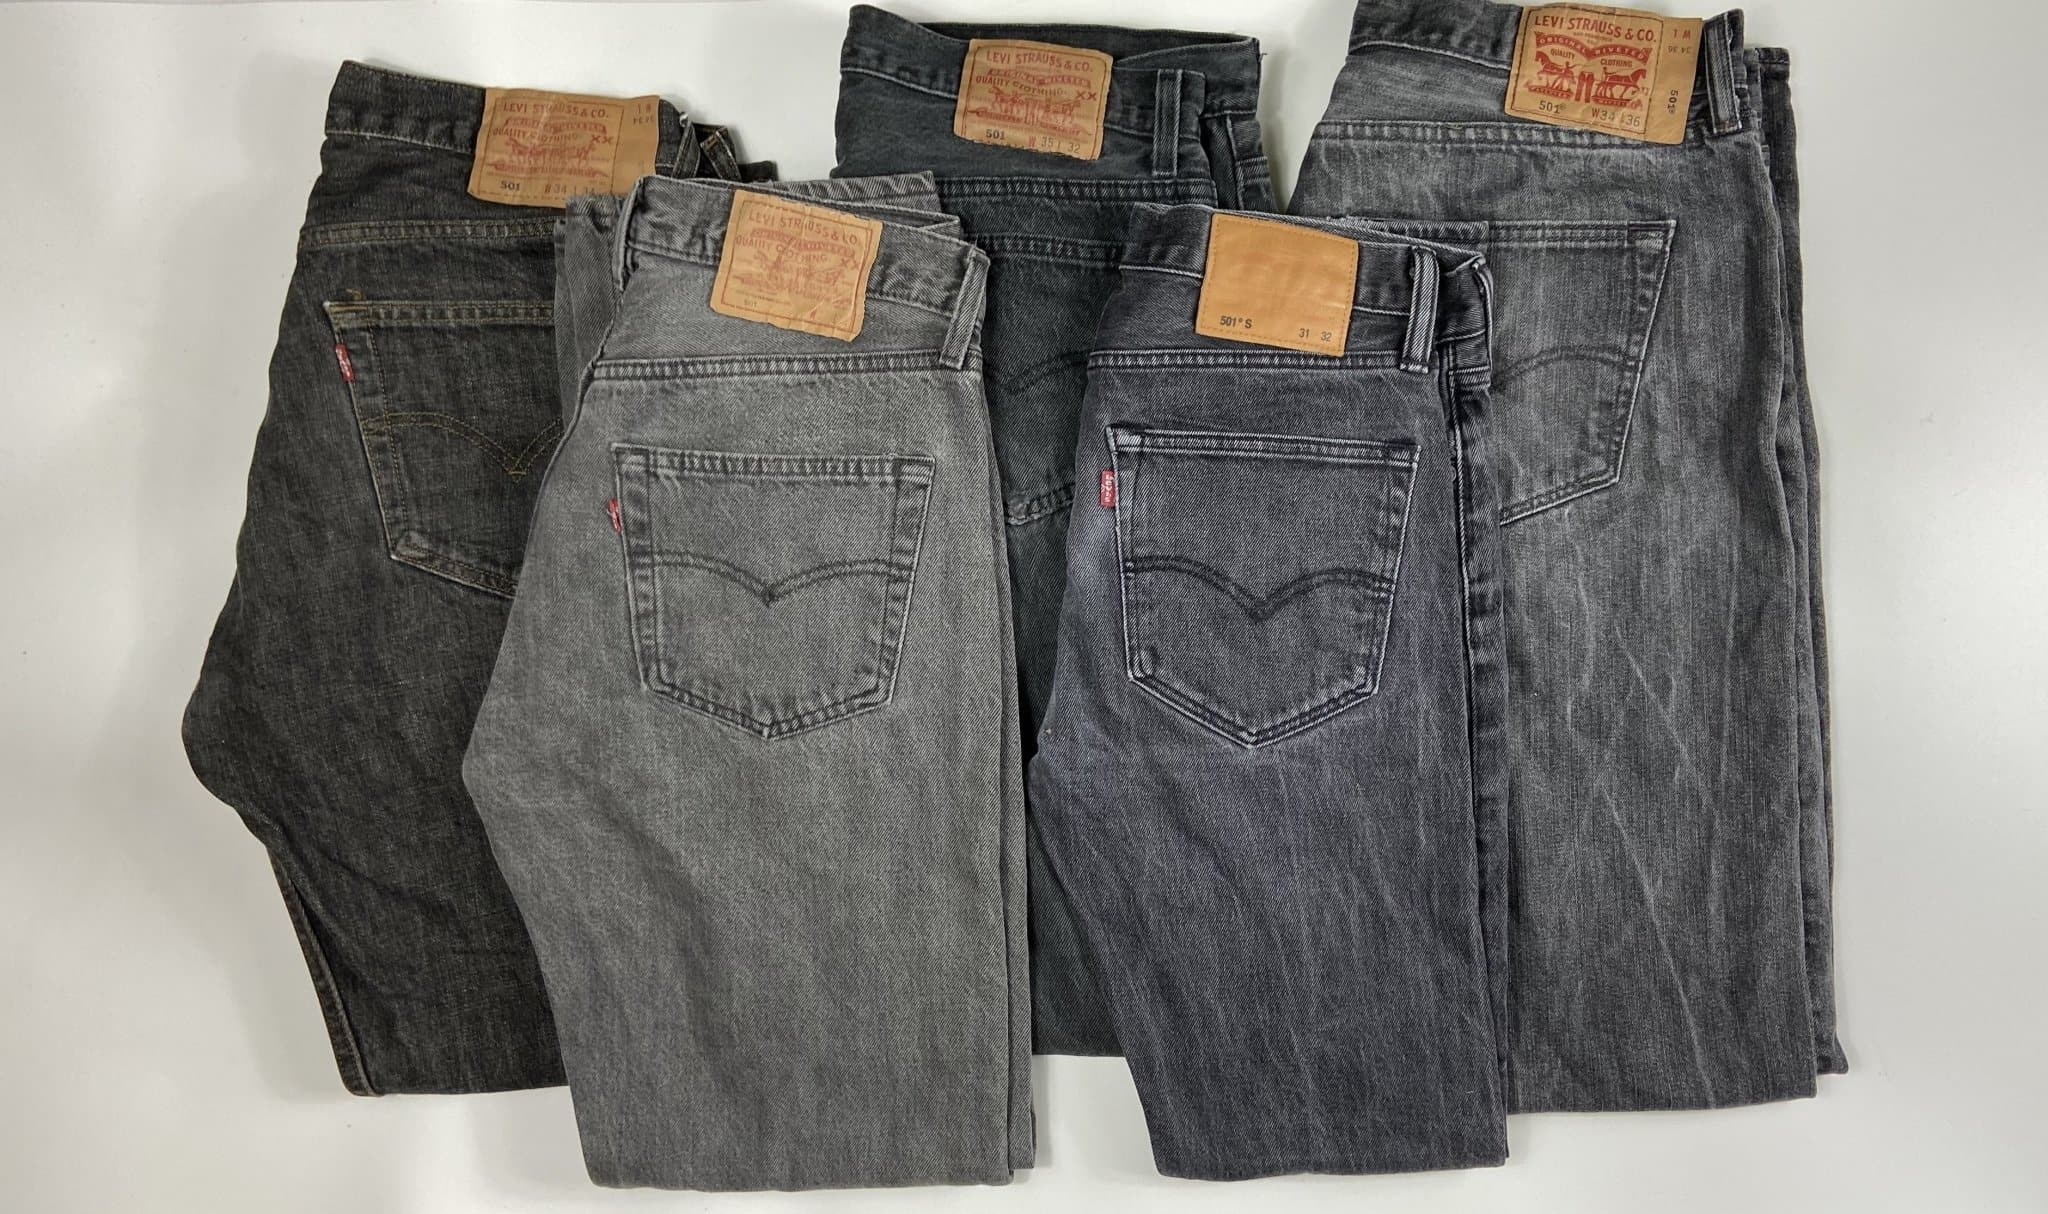 Vintage Levi's Classic 501 Jeans Dark Charcoal W30 L32 (G17) - Discounted Deals UK